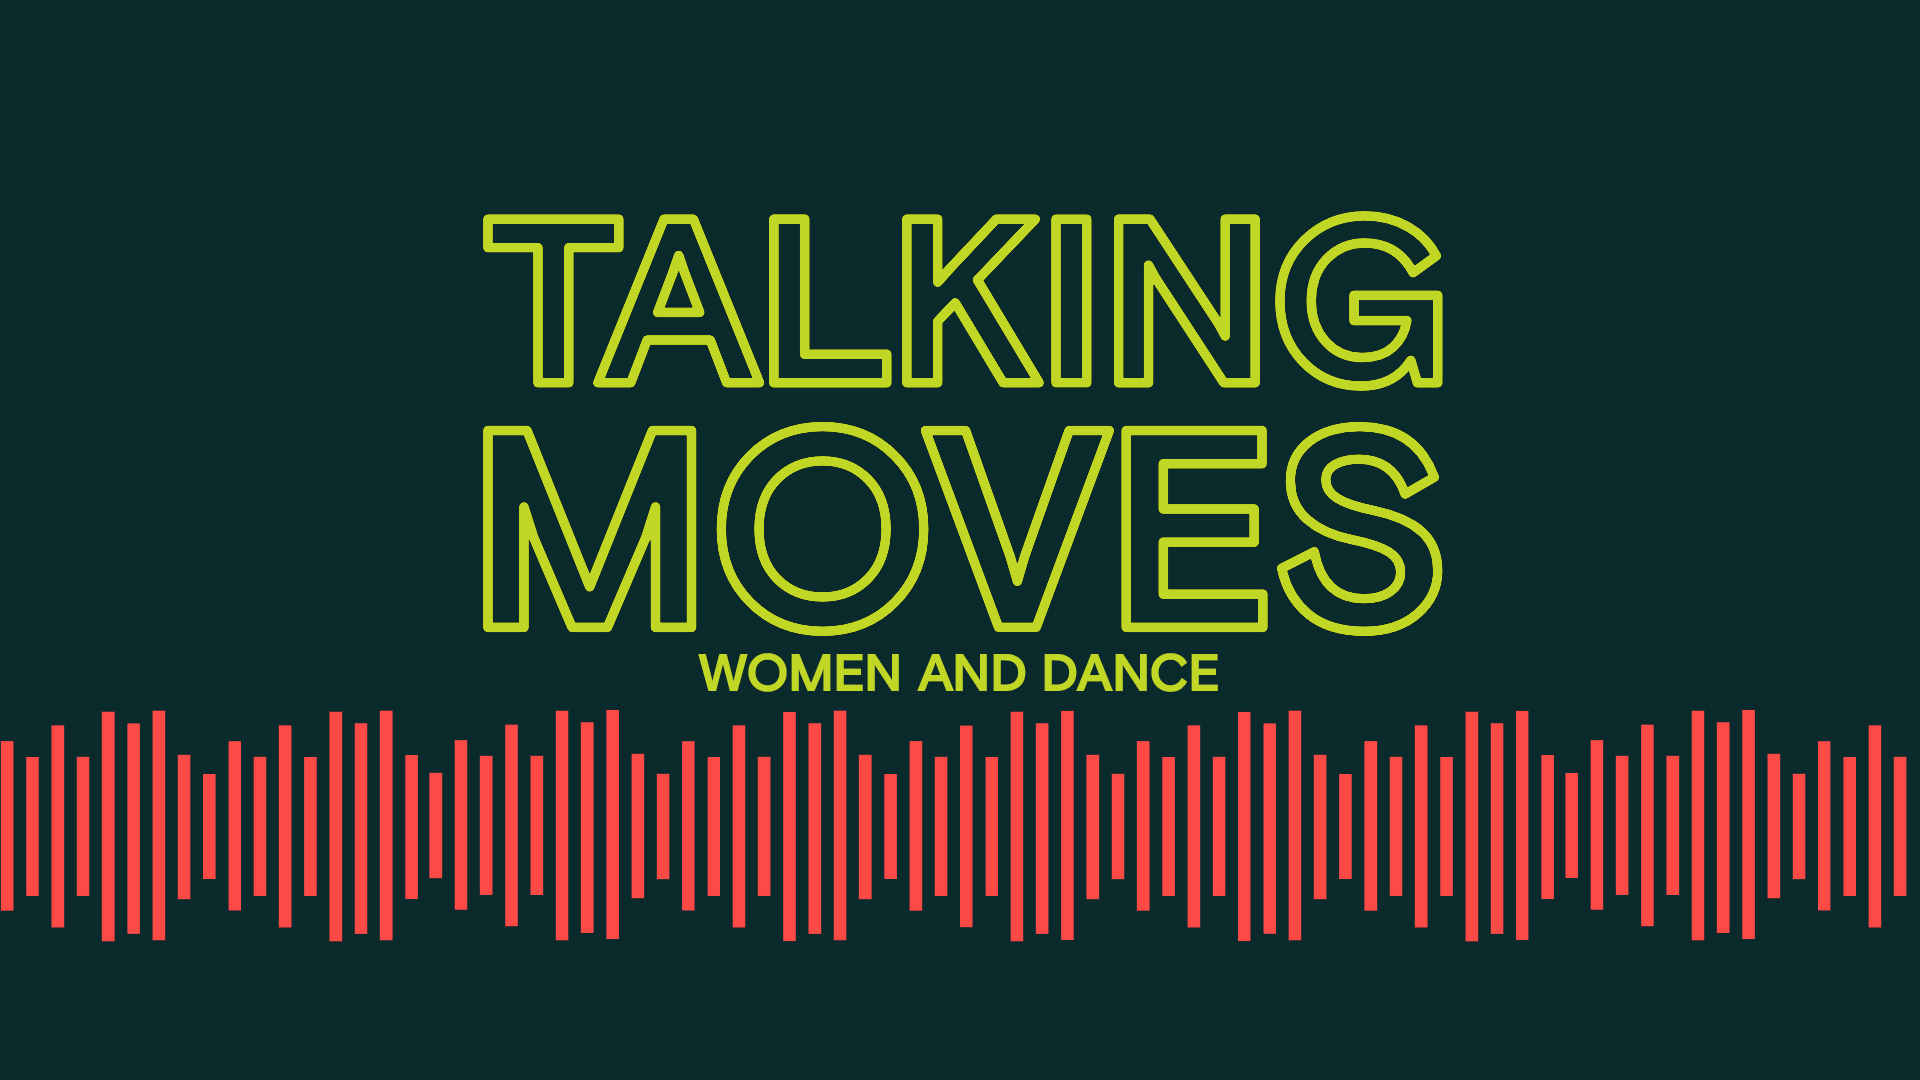 Talking Moves Women and Dance title